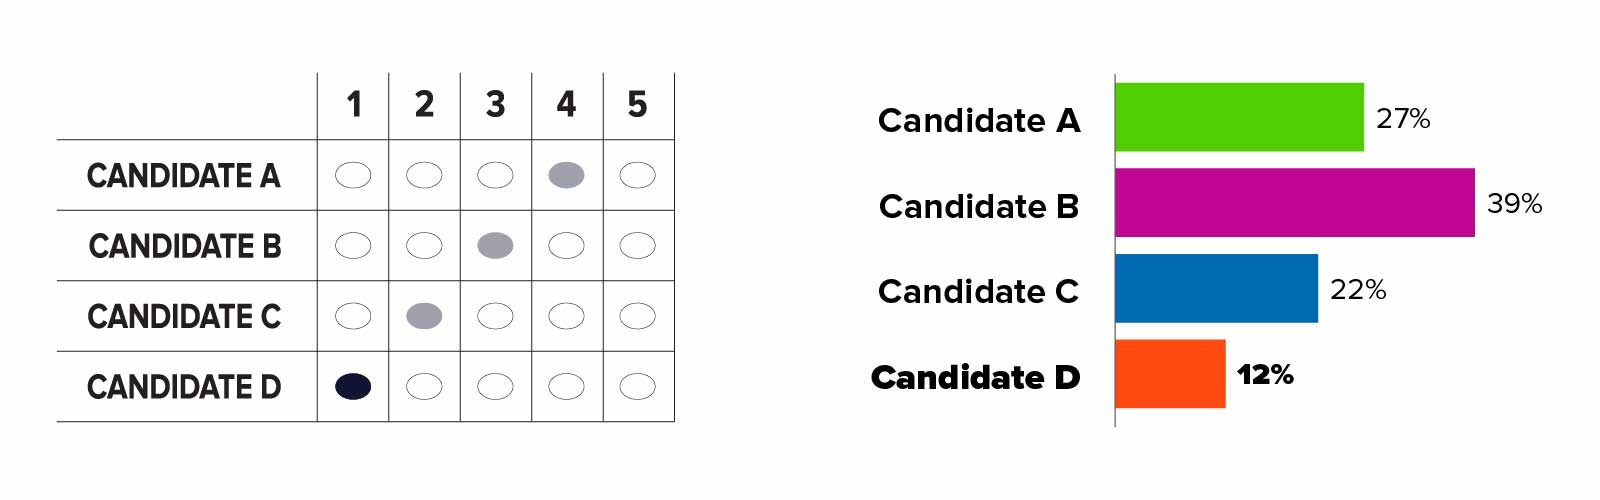 On left: A correctly marked RCV grid ballot where candidate A through D appears in rows and number 1 through 5 appears in columns. Candidate D is ranked 1, Candidate C is ranked 2, Candidate B is ranked 3, and Candidate A is ranked 4. The oval for Candidate D who is ranked 1 is darker than the other ovals. On right: Bar chart displaying the results of first-choice vote totals. Candidate A is shown in green and has 27 percent of percent of first-choice votes. Candidate B is shown in purple and has 39 percent. Candidate C is shown in blue and has 22 percent. Candidate D is shown in orange and has 12 percent. Candidate D has the fewest votes in this round. one candidate eliminated, votes redistributed: On left: A correctly marked RCV grid ballot where candidate A through D appears in rows and number 1 through 5 appears in columns. Candidate D is ranked 1, Candidate C is ranked 2, Candidate B is ranked 3, and Candidate A is ranked 4. Candidate D's name is grayed out because they were eliminated in the last round. The oval for Candidate C who is ranked 2 is darker than the other ovals. On right: Bar chart displaying the results of vote after Round 1. Candidate A is shown in green and has 27 percent of first-choice votes. Candidate B is shown in purple and has 39 percent. Candidate C is shown in blue and has 22 percent. Candidate D has 12 percent, their entire bar and name is grayed out and arrows point from Candidate D to the three remaining candidate's bars. The ballots for the 12 percent of voters whose top choice in this round was Candidate D will move to the next-highest ranked candidate on their ballots.